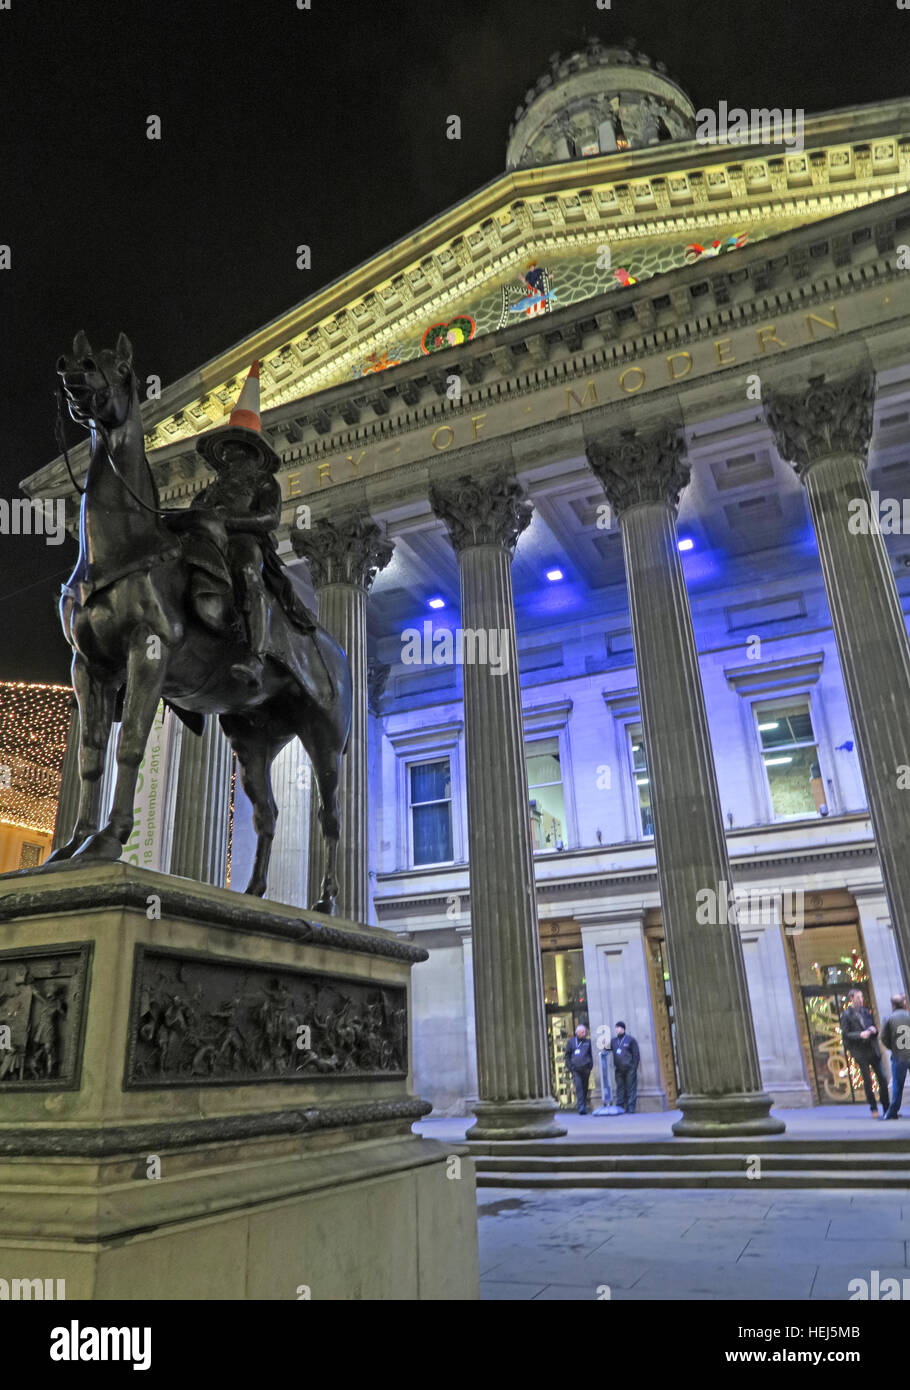 Wealth,empire,night,dusk,nightshot,dark,in the dark,arch,stone,building,architecture,grand,grandeur,wealth,rich,riches,Merchant City area,City Lights,Glasgow Building,Glasgow Buildings,Dec,Christmas,December,Winter,curtain,light,lights,shopping,bar,pub,bars,entertainment,gallery,GOMA,royal,exchange,GoTonySmith,@HotpixUK,Tony,Smith,UK,GB,Great,Britain,United,Kingdom,Scots,Scottish,British,Scotland,Glasgow,Greater,problem,with,problem with,issue with,City,Centre,cities,Urban,Urbanist,town,infrastructure,transport,tour,tourism,tourists,urban,attraction,attractions,GOMA,and,traffic cone,traffic,cone,on,head,of,Duke Of Wellington,Duke,Wellington,statue,glaswegians,glaswegian,Buy Pictures of,Buy Images Of,Images of,Stock Images,Tony Smith,United Kingdom,Great Britain,Greater Glasgow,British Isles,Glasgow City Centre,City Centre